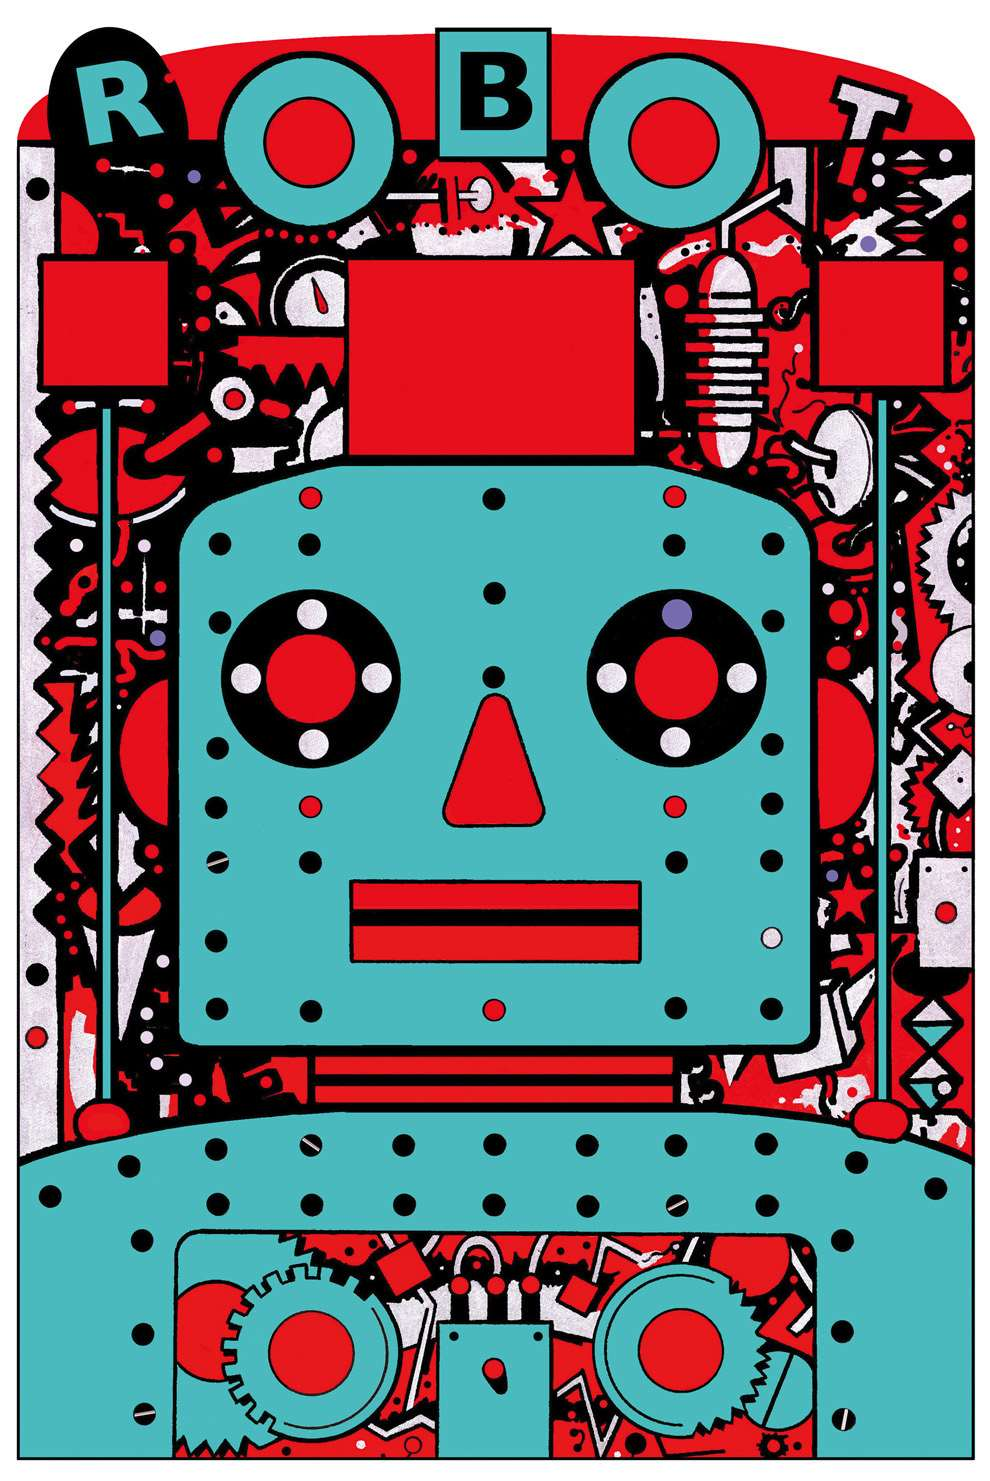 Chris McEwan, Graphic and bold illustration of a red and blue robot